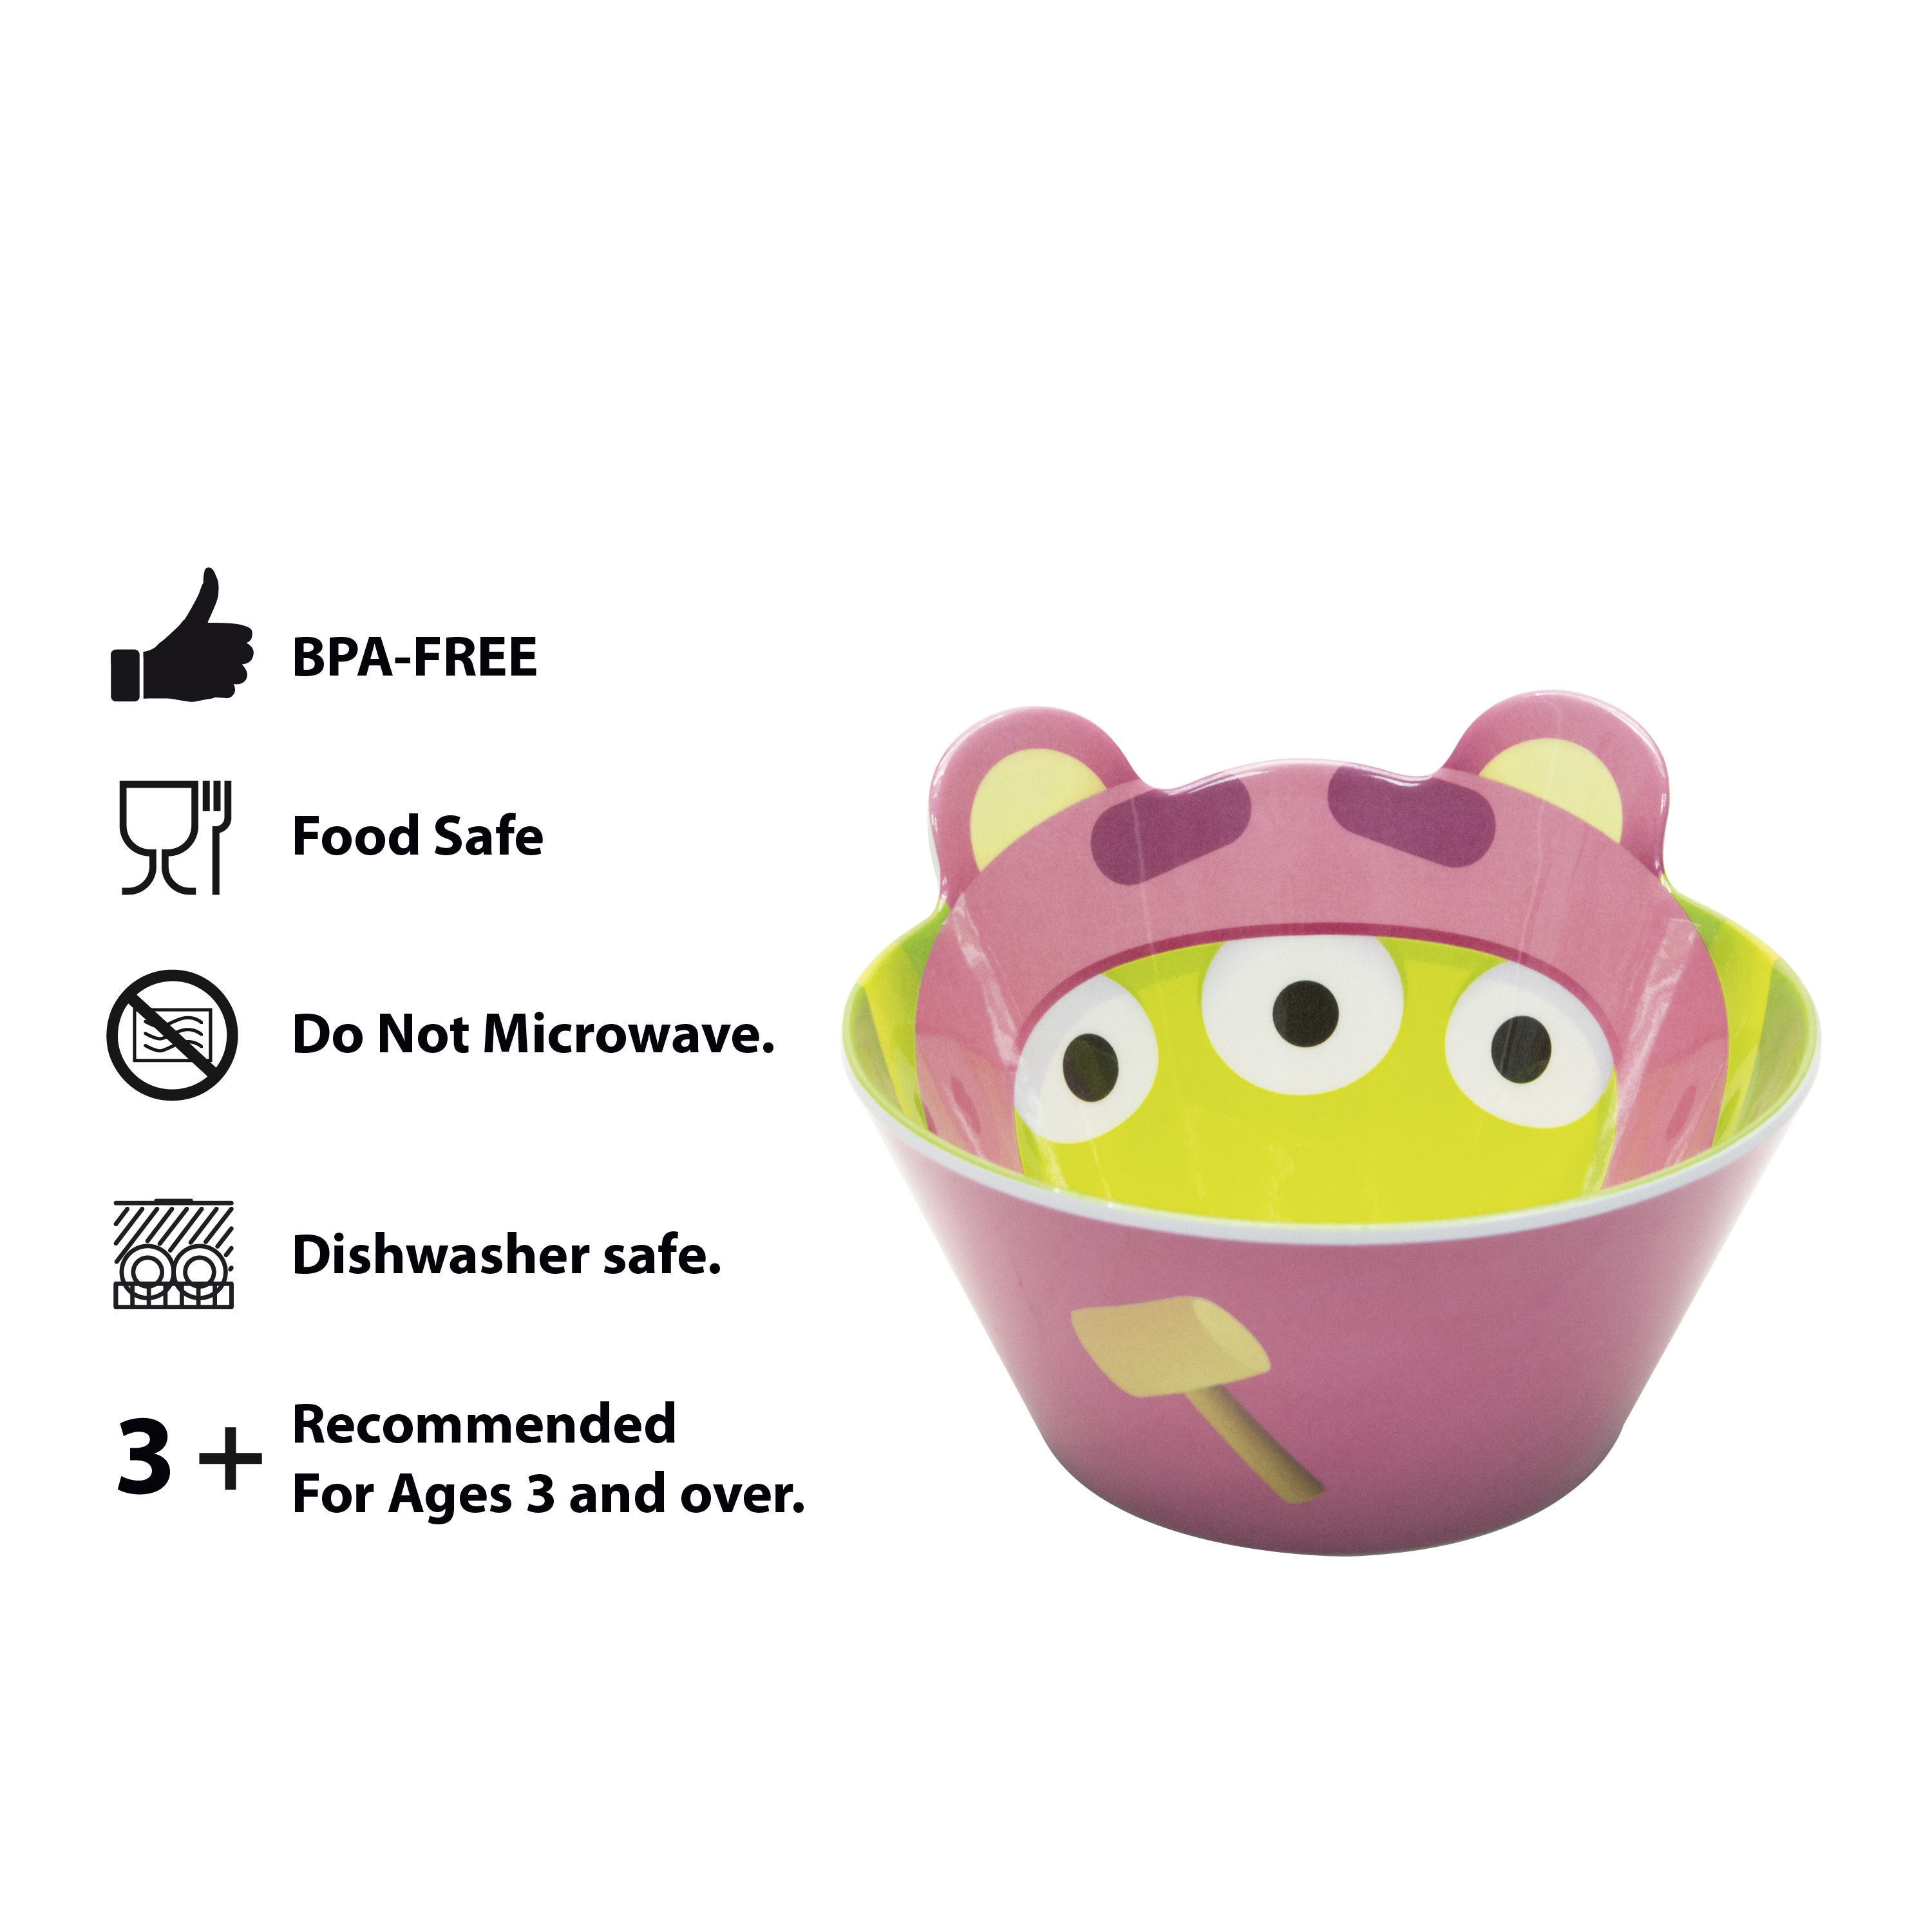 Disney and Pixar Toy Story 4 Plate and Bowl Set, Lotso, 2-piece set slideshow image 9